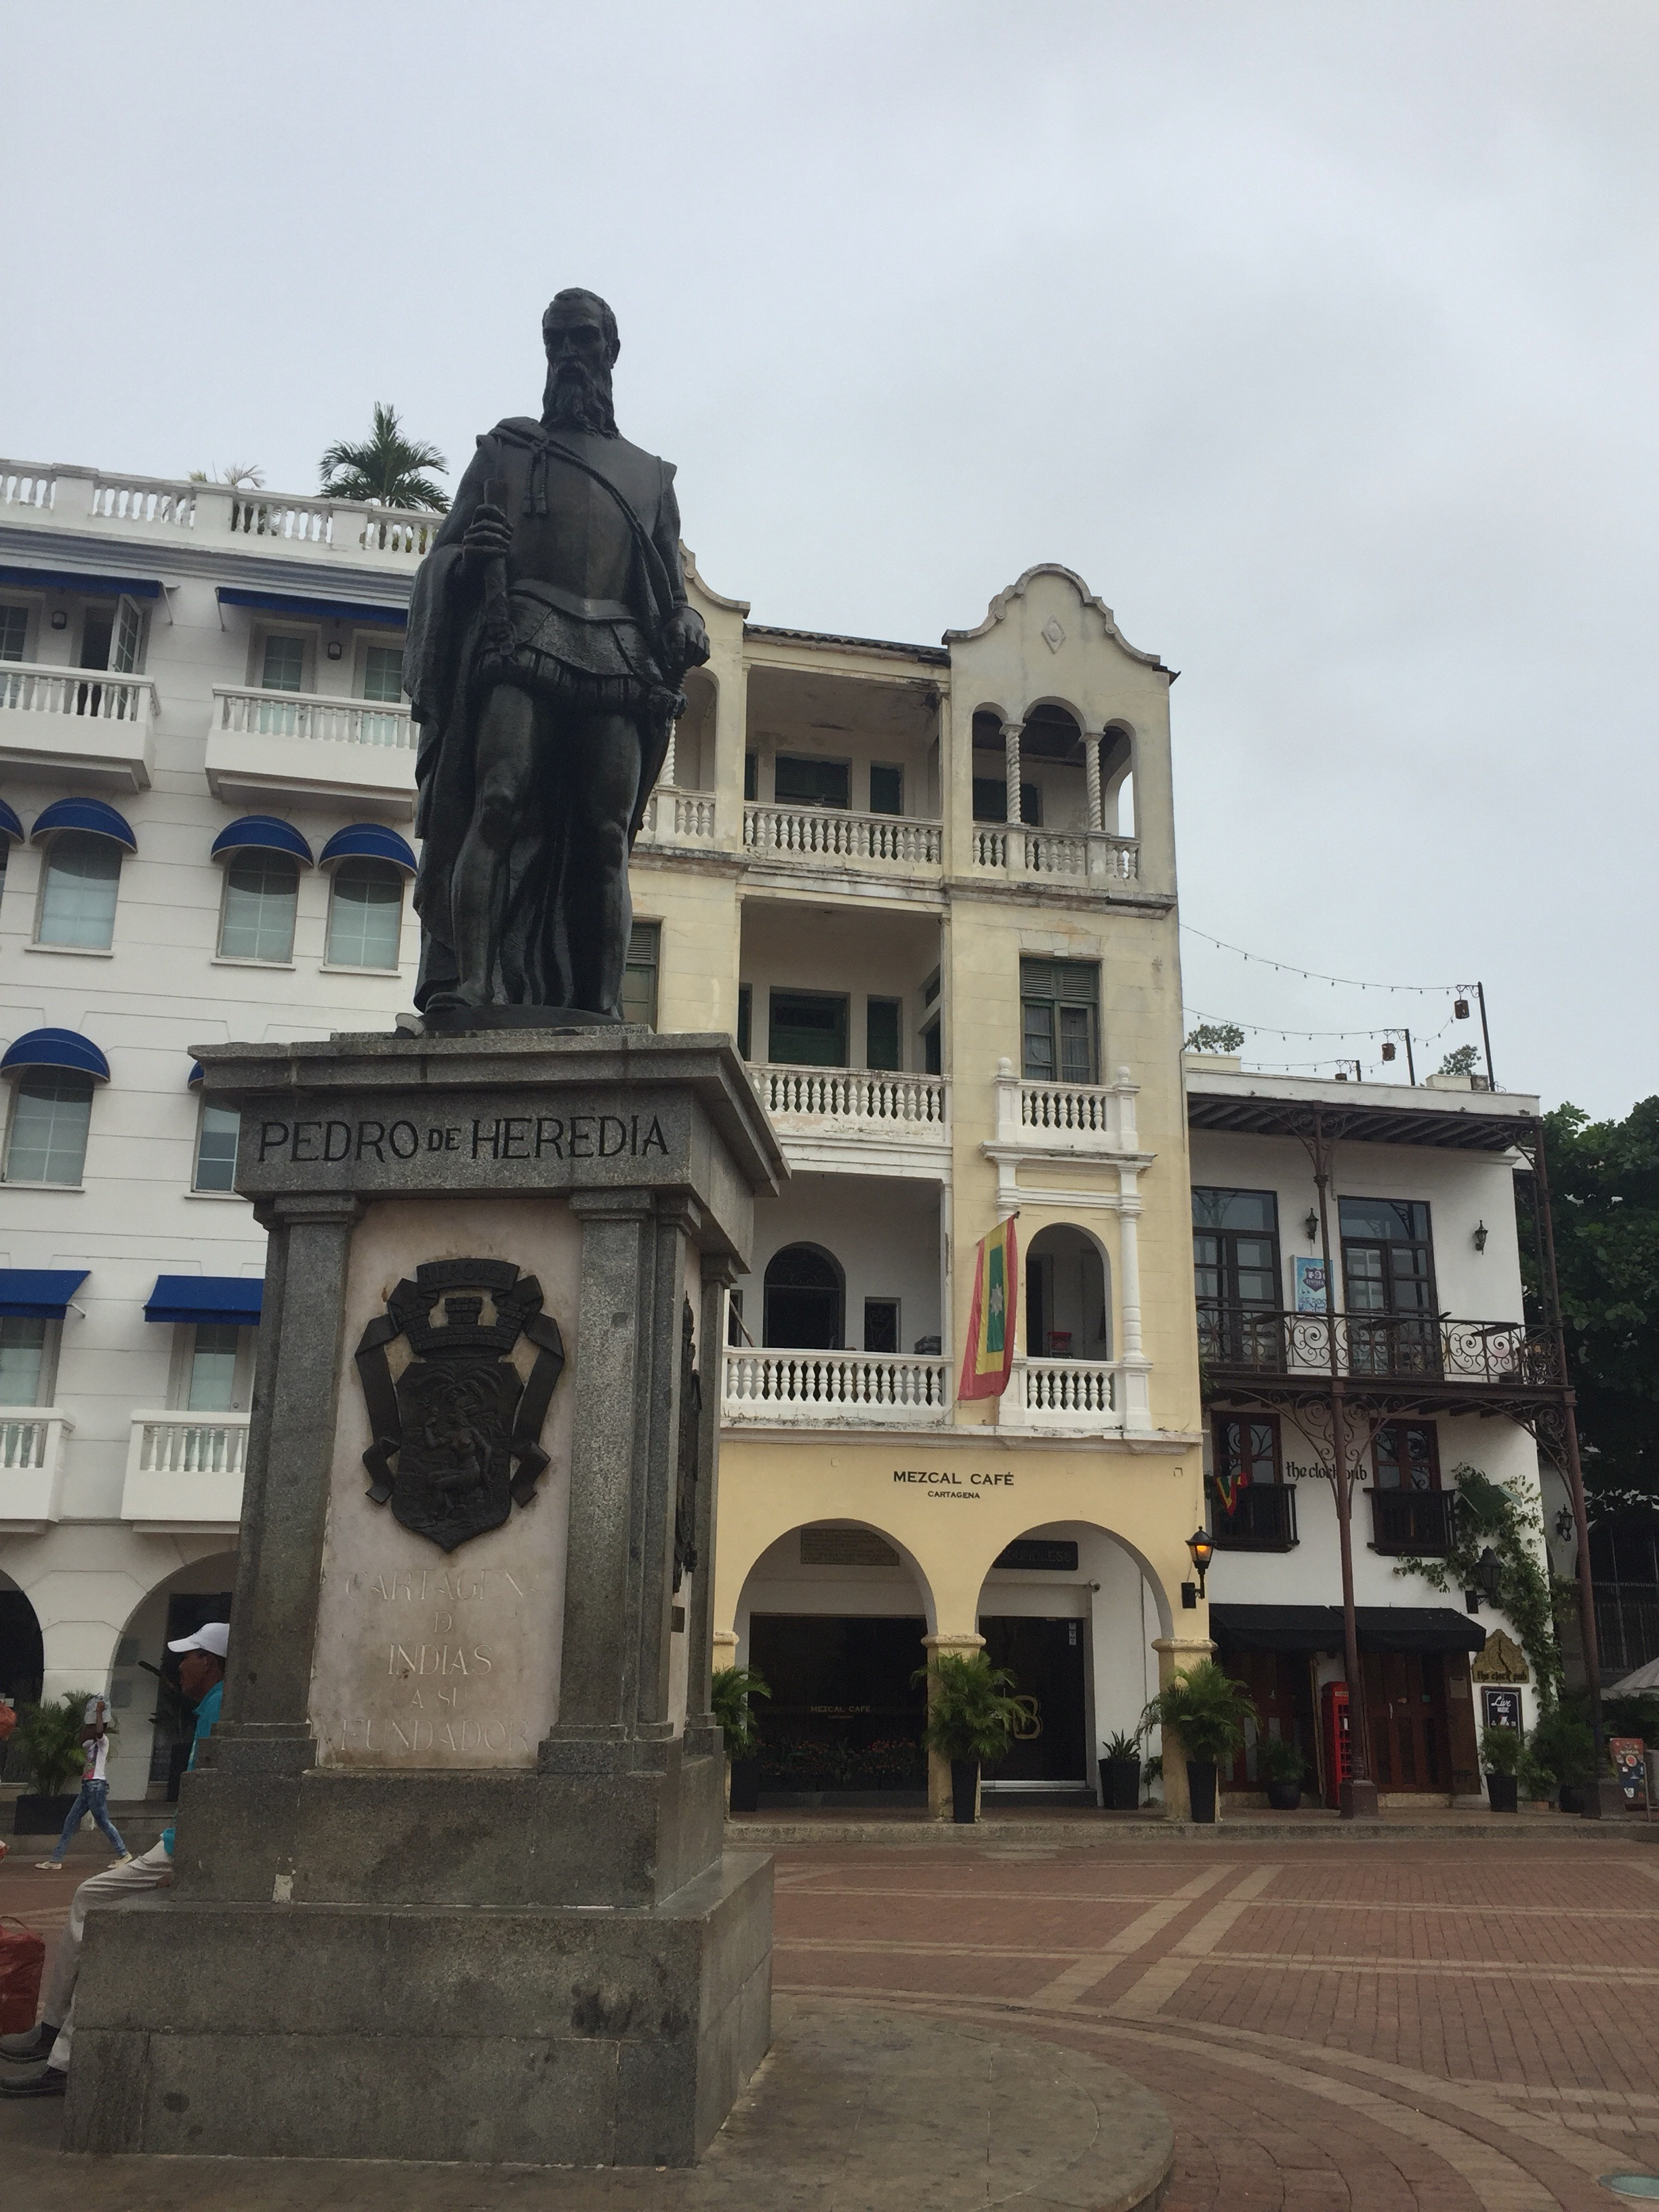 Pedro de Heredia was a Spanish conquistador, founder of the city of Cartagena de Indias